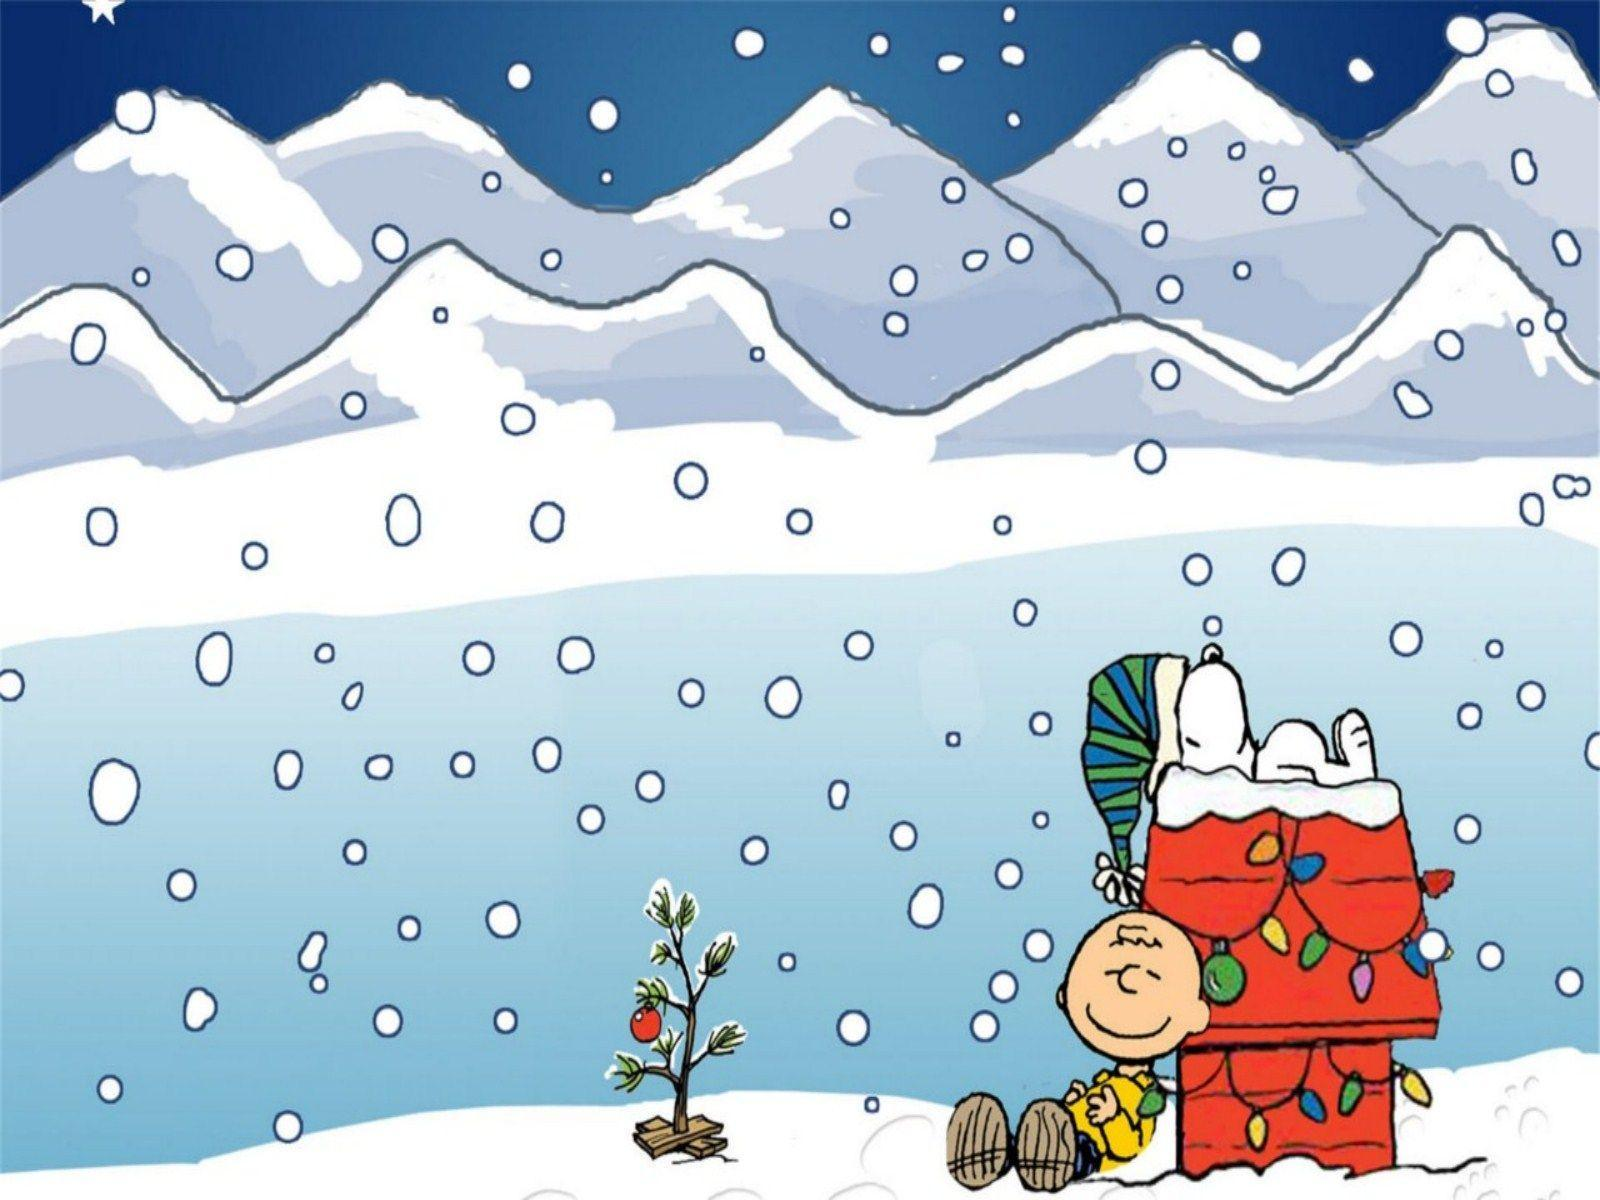 xmas stuff for charlie brown christmas gif - Charlie Brown Christmas Gif